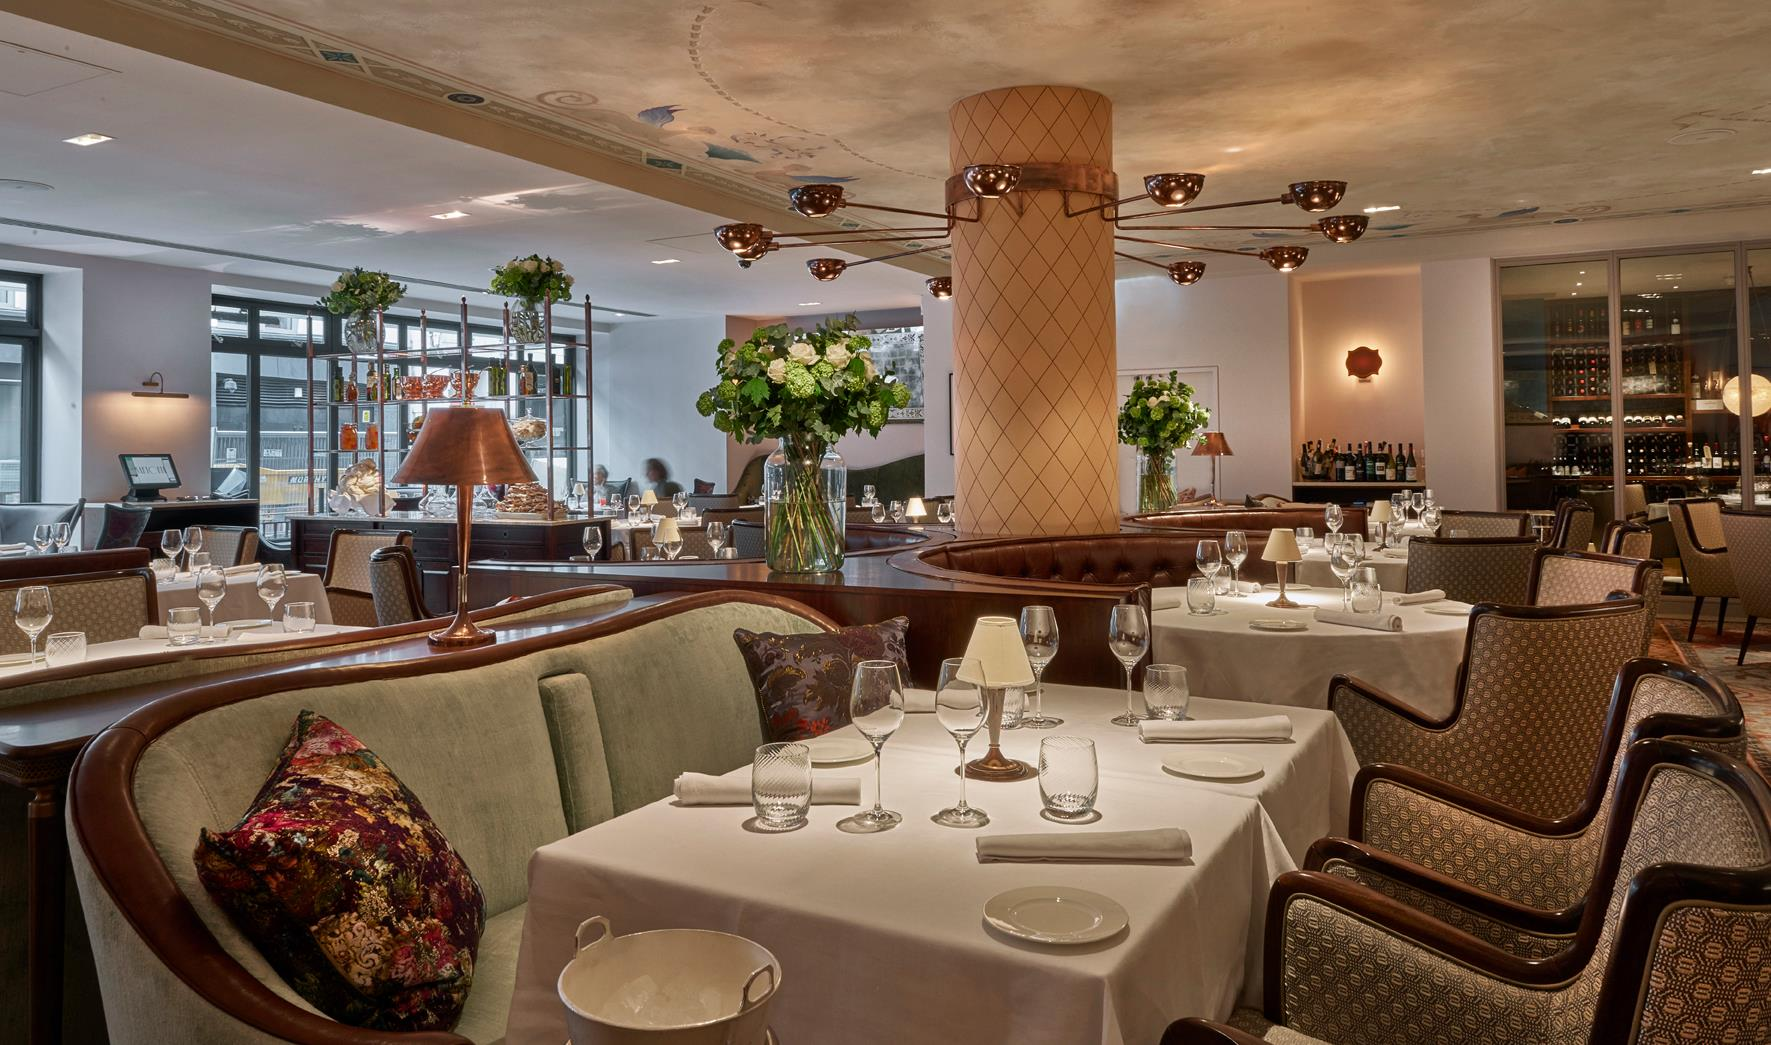 Sartoria Review, Sartoria restaurant Review, Sartoria london Review, sartoria mayfair review